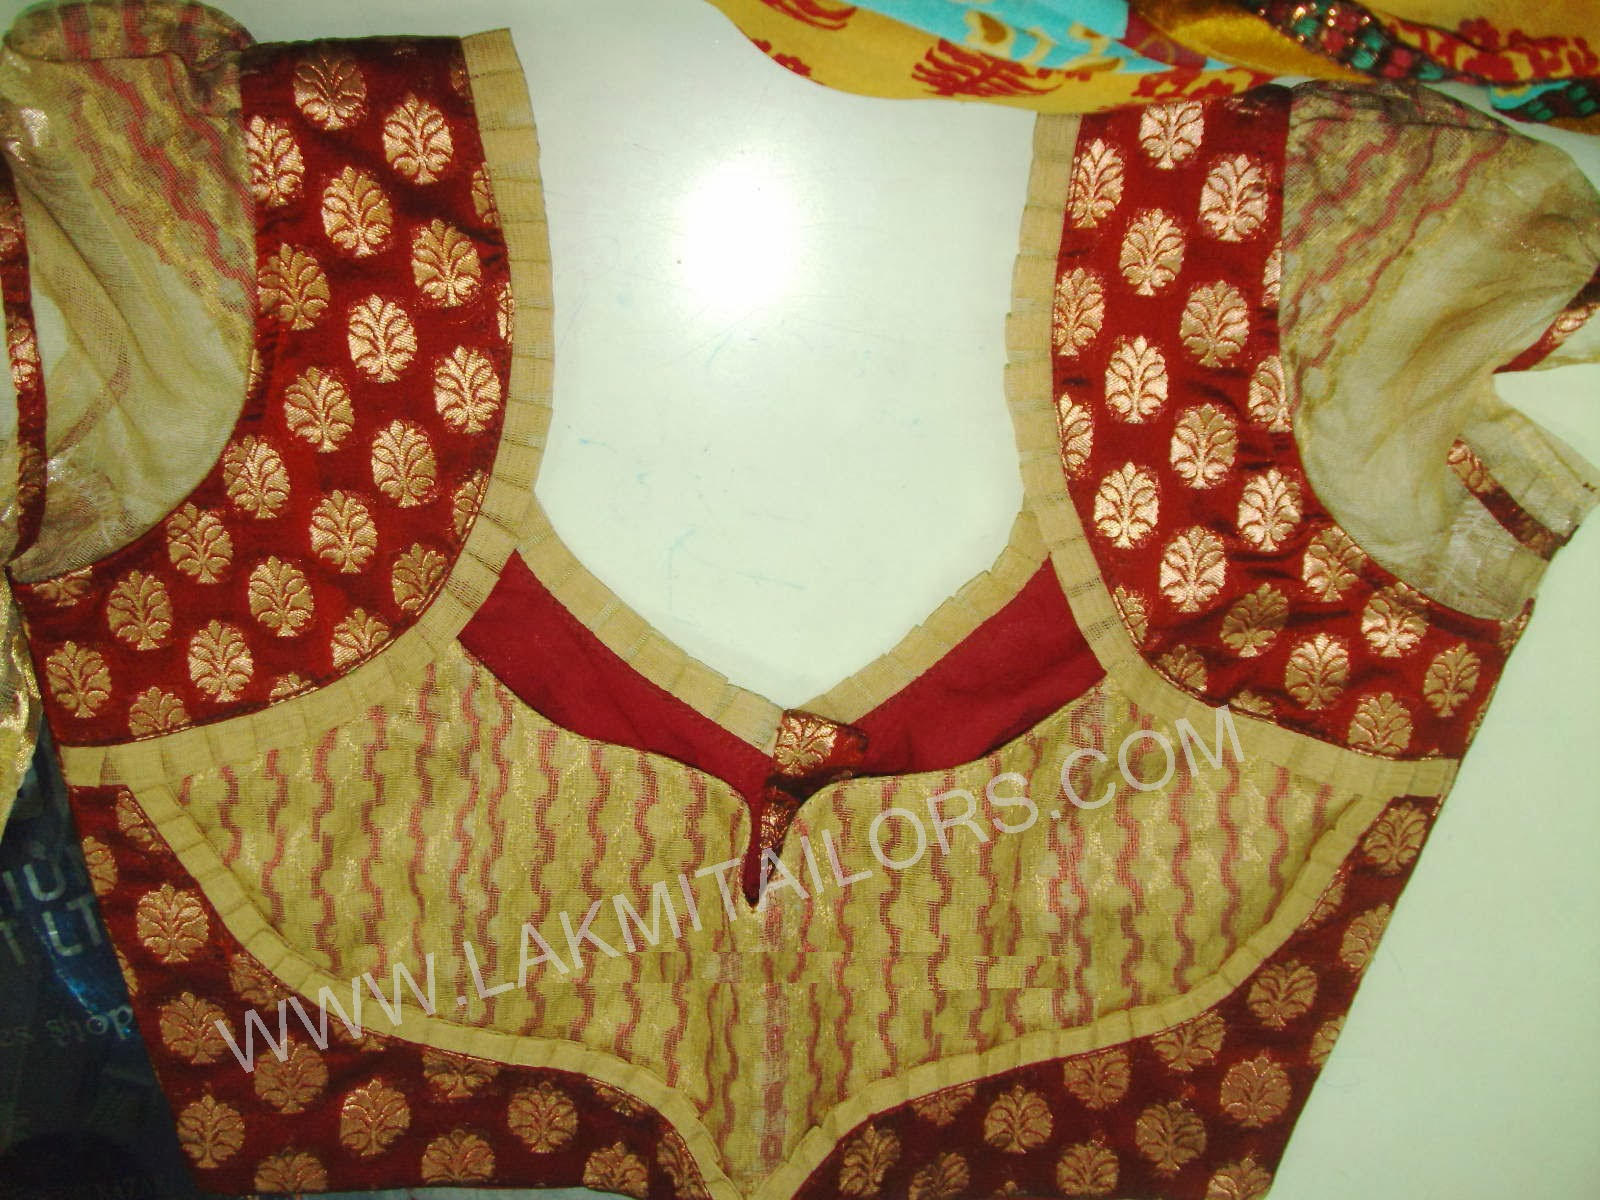 Model Blouse Neck Design In Telugu Best Blouse Designs Images Blouse Designs Blouse Neck Designs Saree Blouse Designs Discover The Latest Best Selling Shop Women S Shirts High Quality Blouses,Pretty French Toe Nail Designs